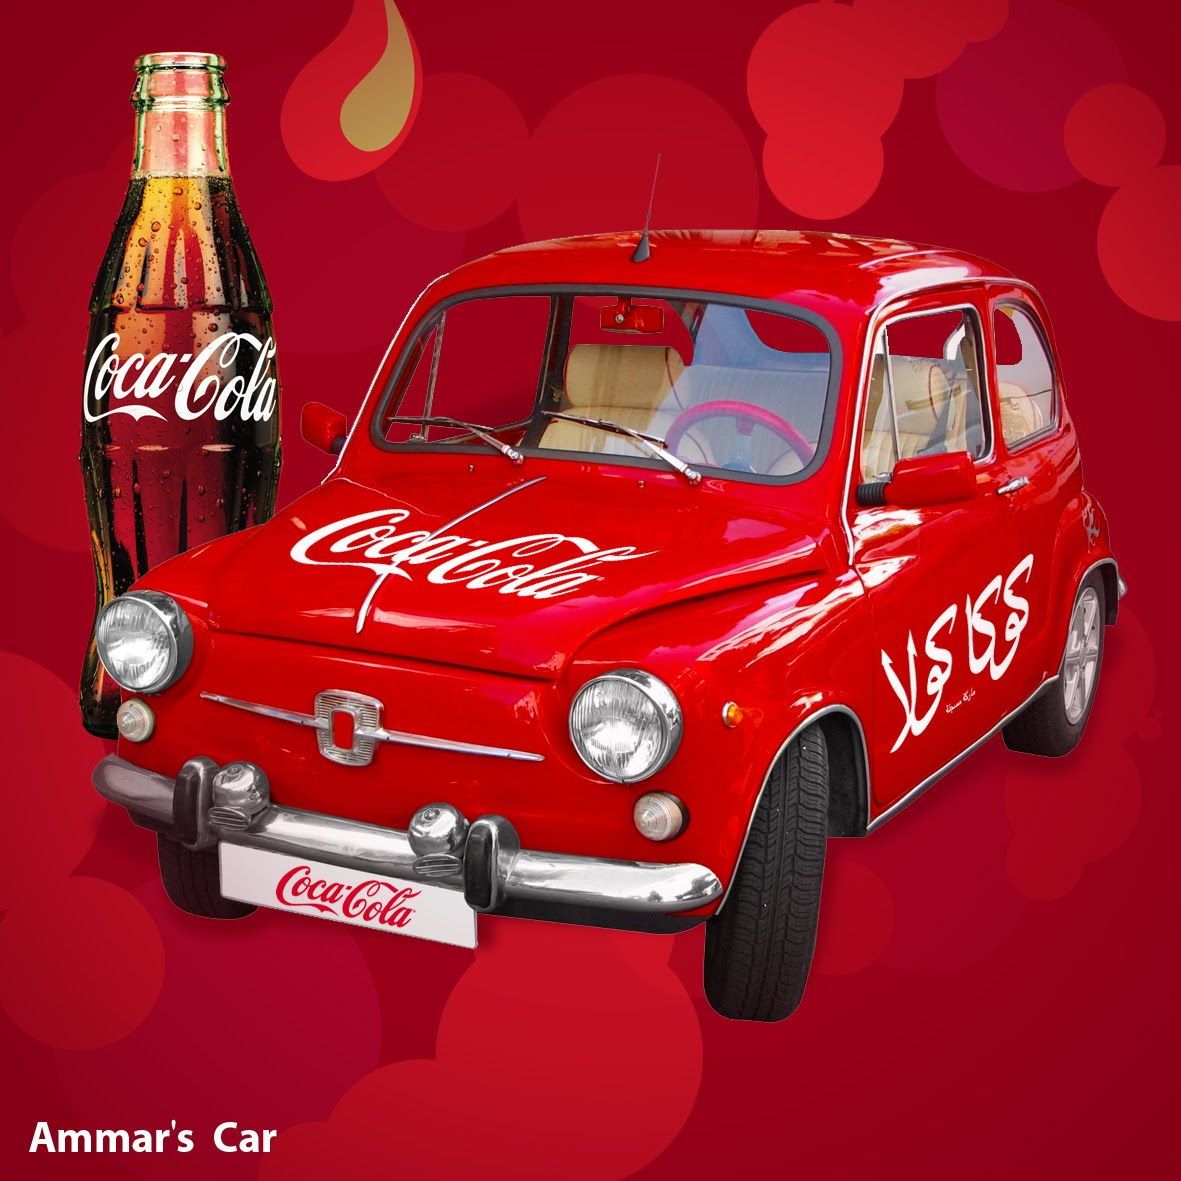 Cool Car Wallpapers 500 Wallpapers With Hd Coca Cola